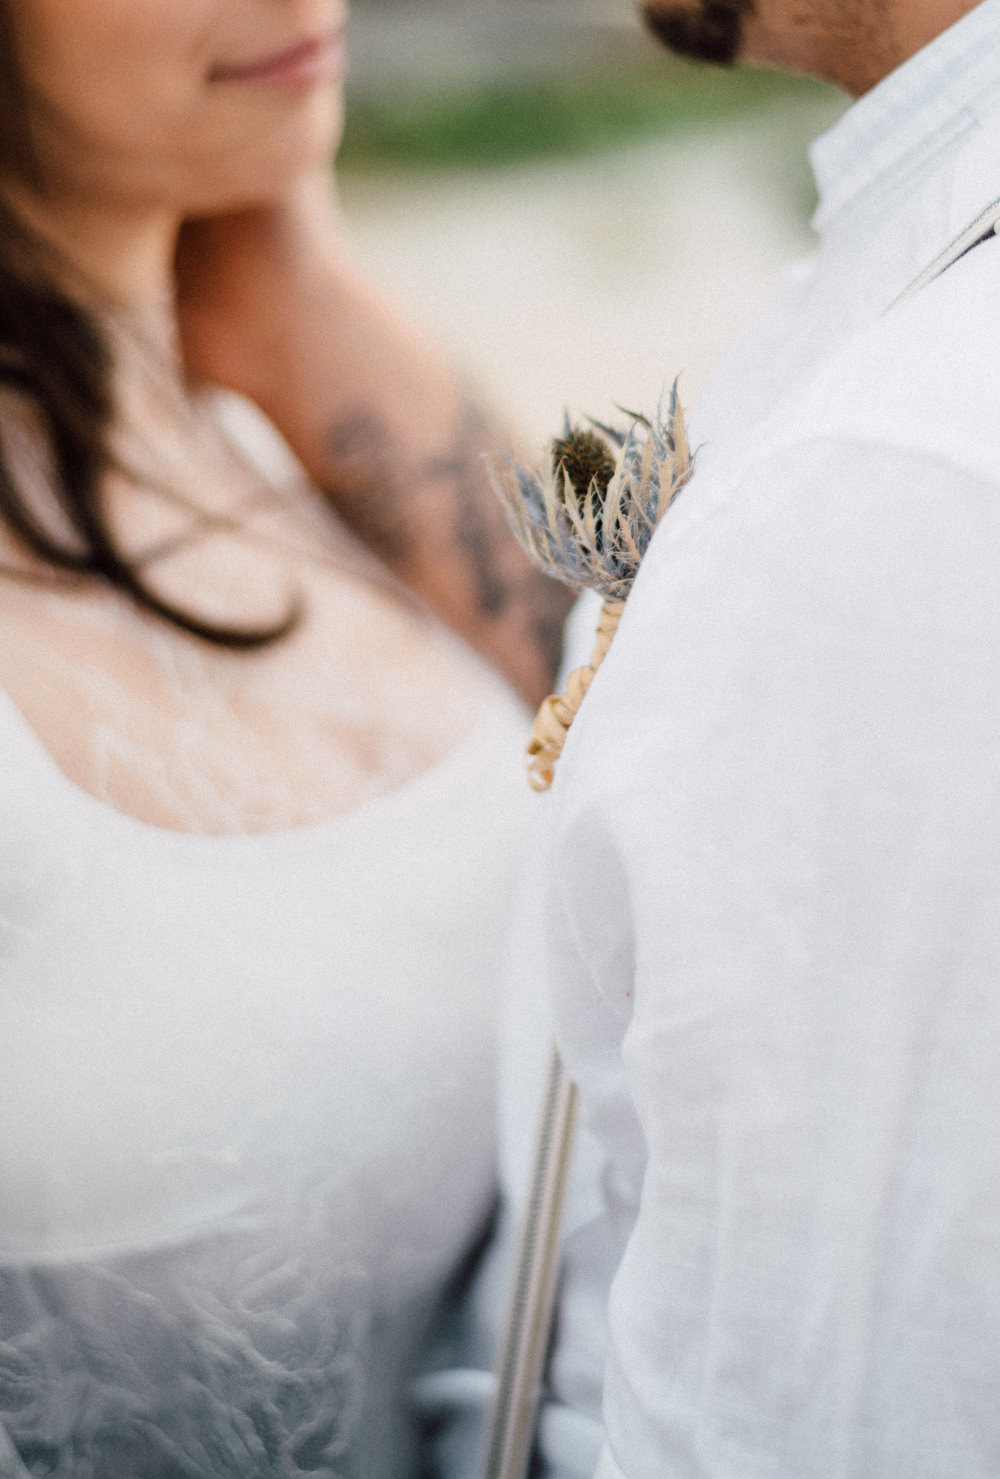 Outdoor Wild Nature Destination Spain Europe Beach Styled Shoot Groom Braces Bride Blue Gown Lace Sea Holly Buttonhole   Blue Ibiza Elopement Ideas and Surprise Proposal Serena Genovese Photography